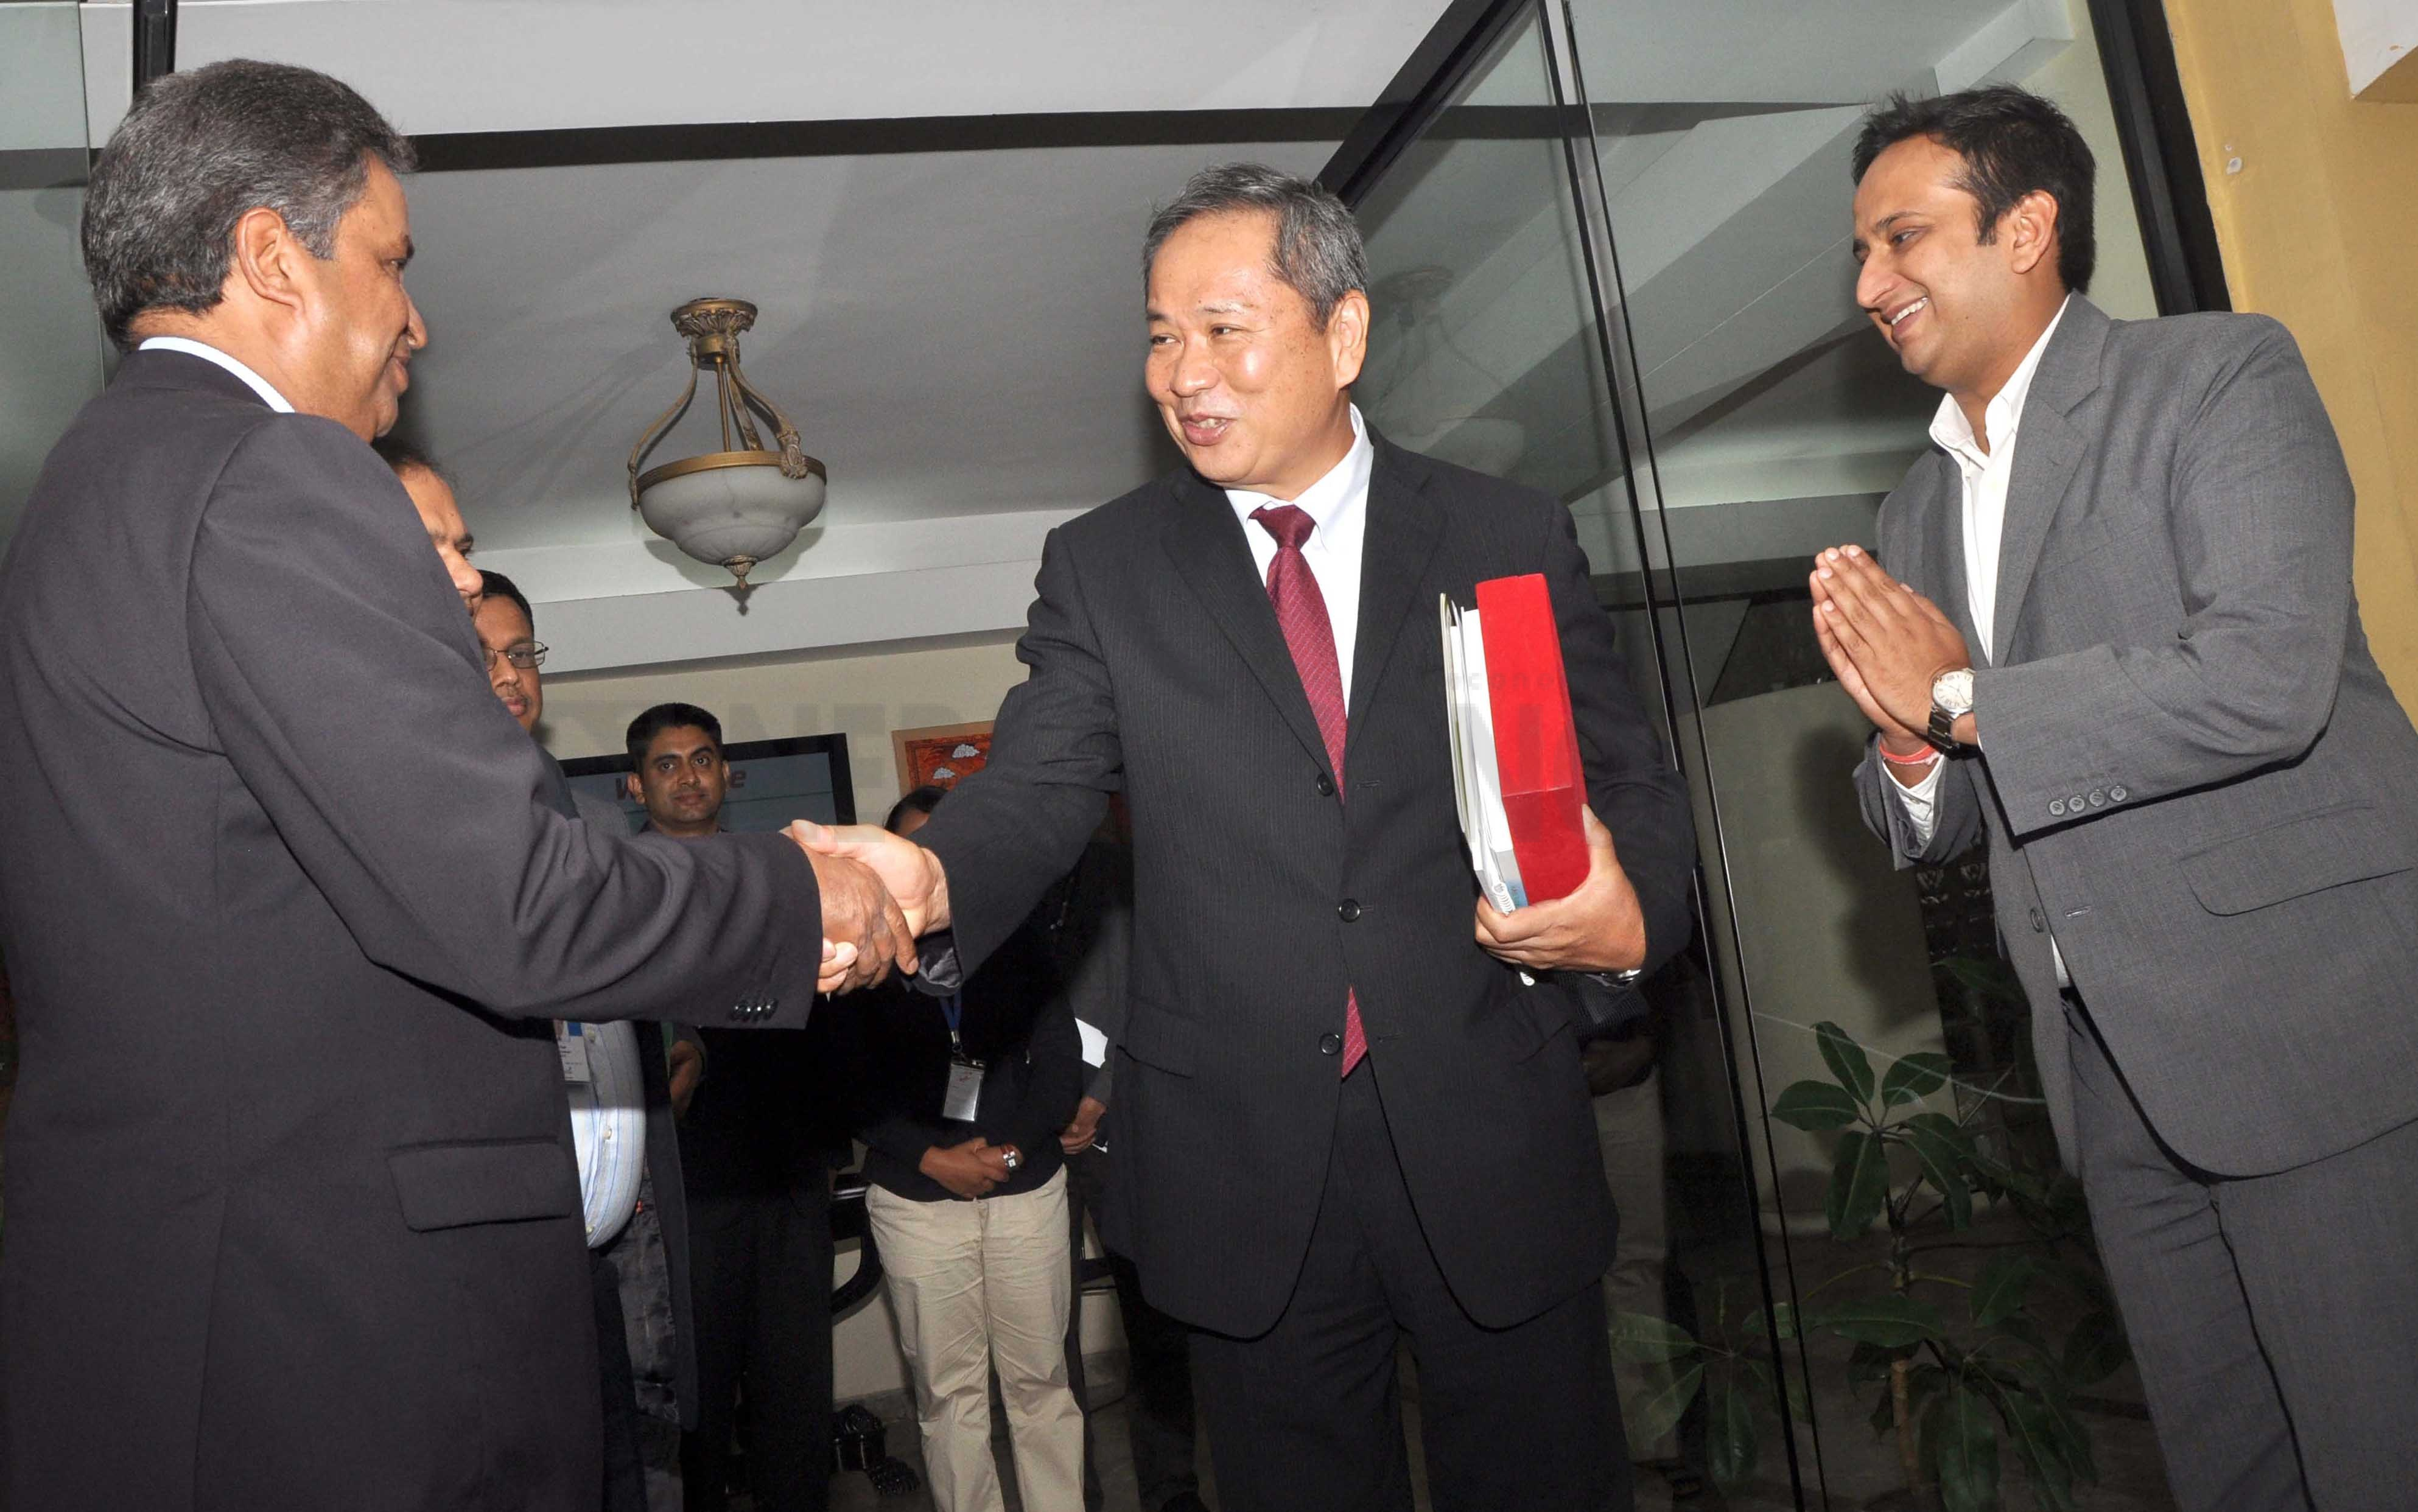 Chaudhary invites Japanese to invest in Nepal